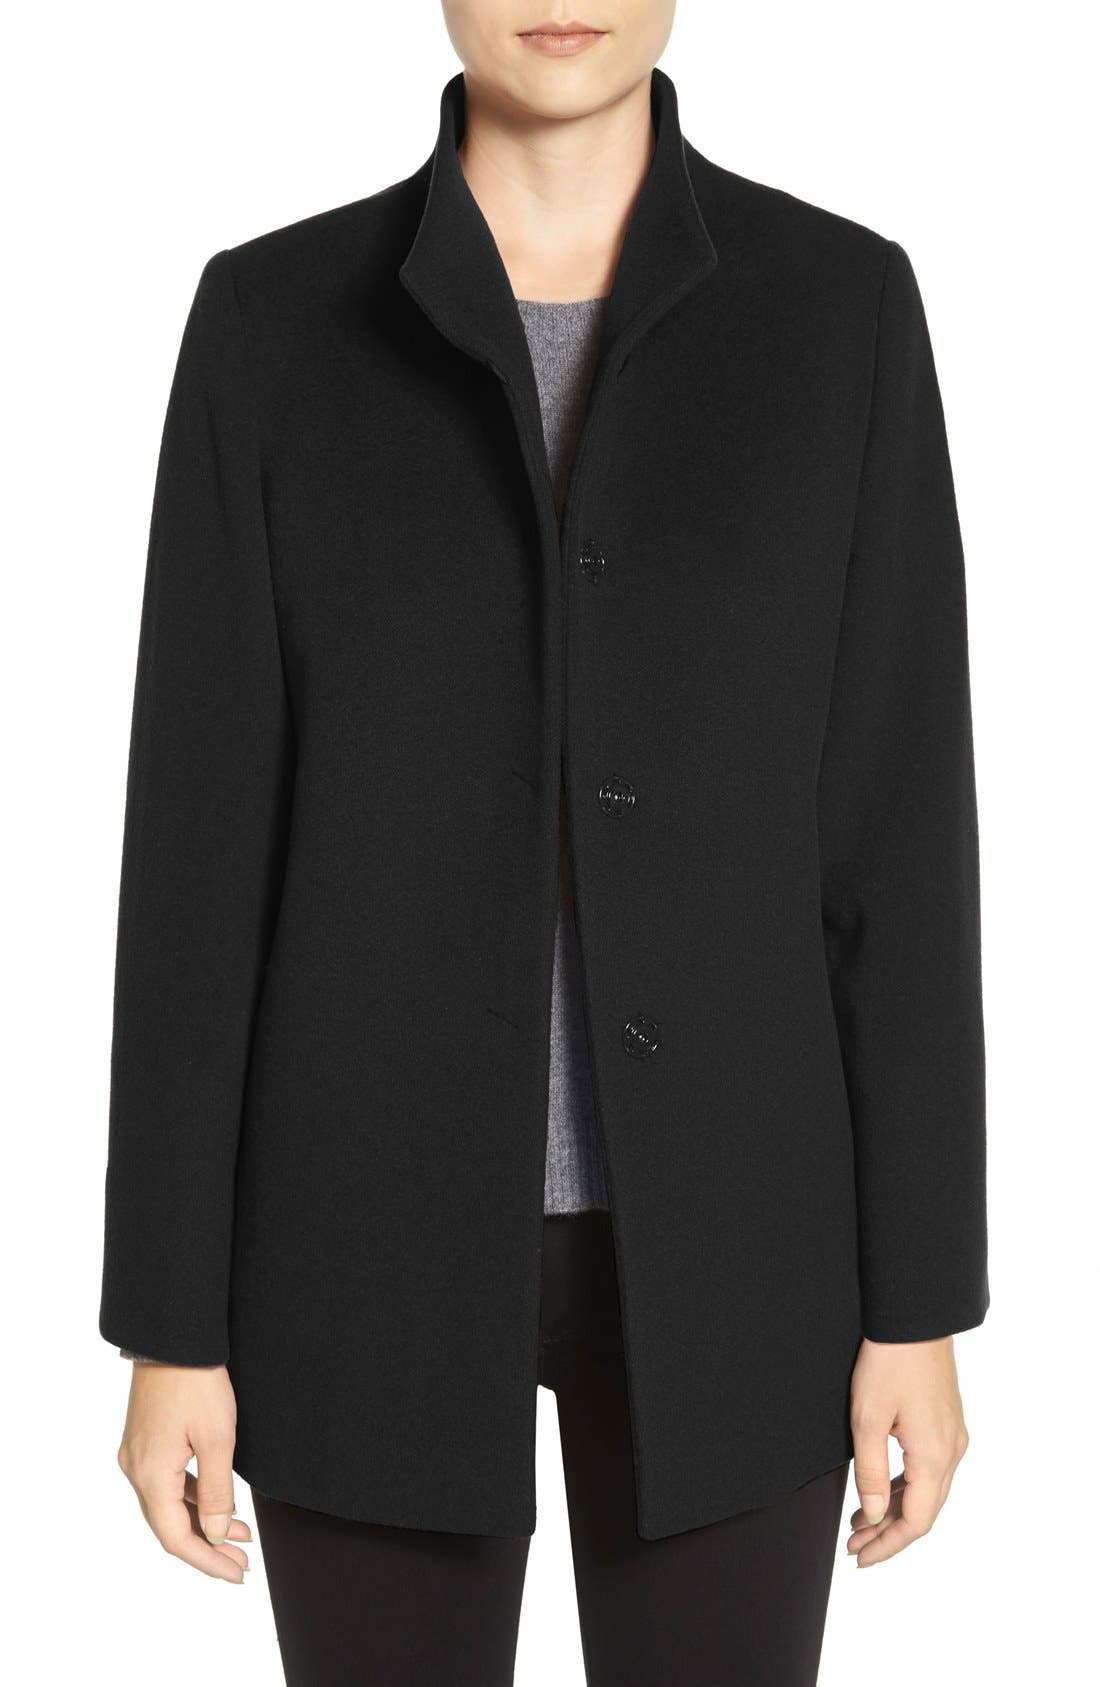 Main Image - Cinzia Rocca DUE Stand Collar Wool Blend Coat (Petite)